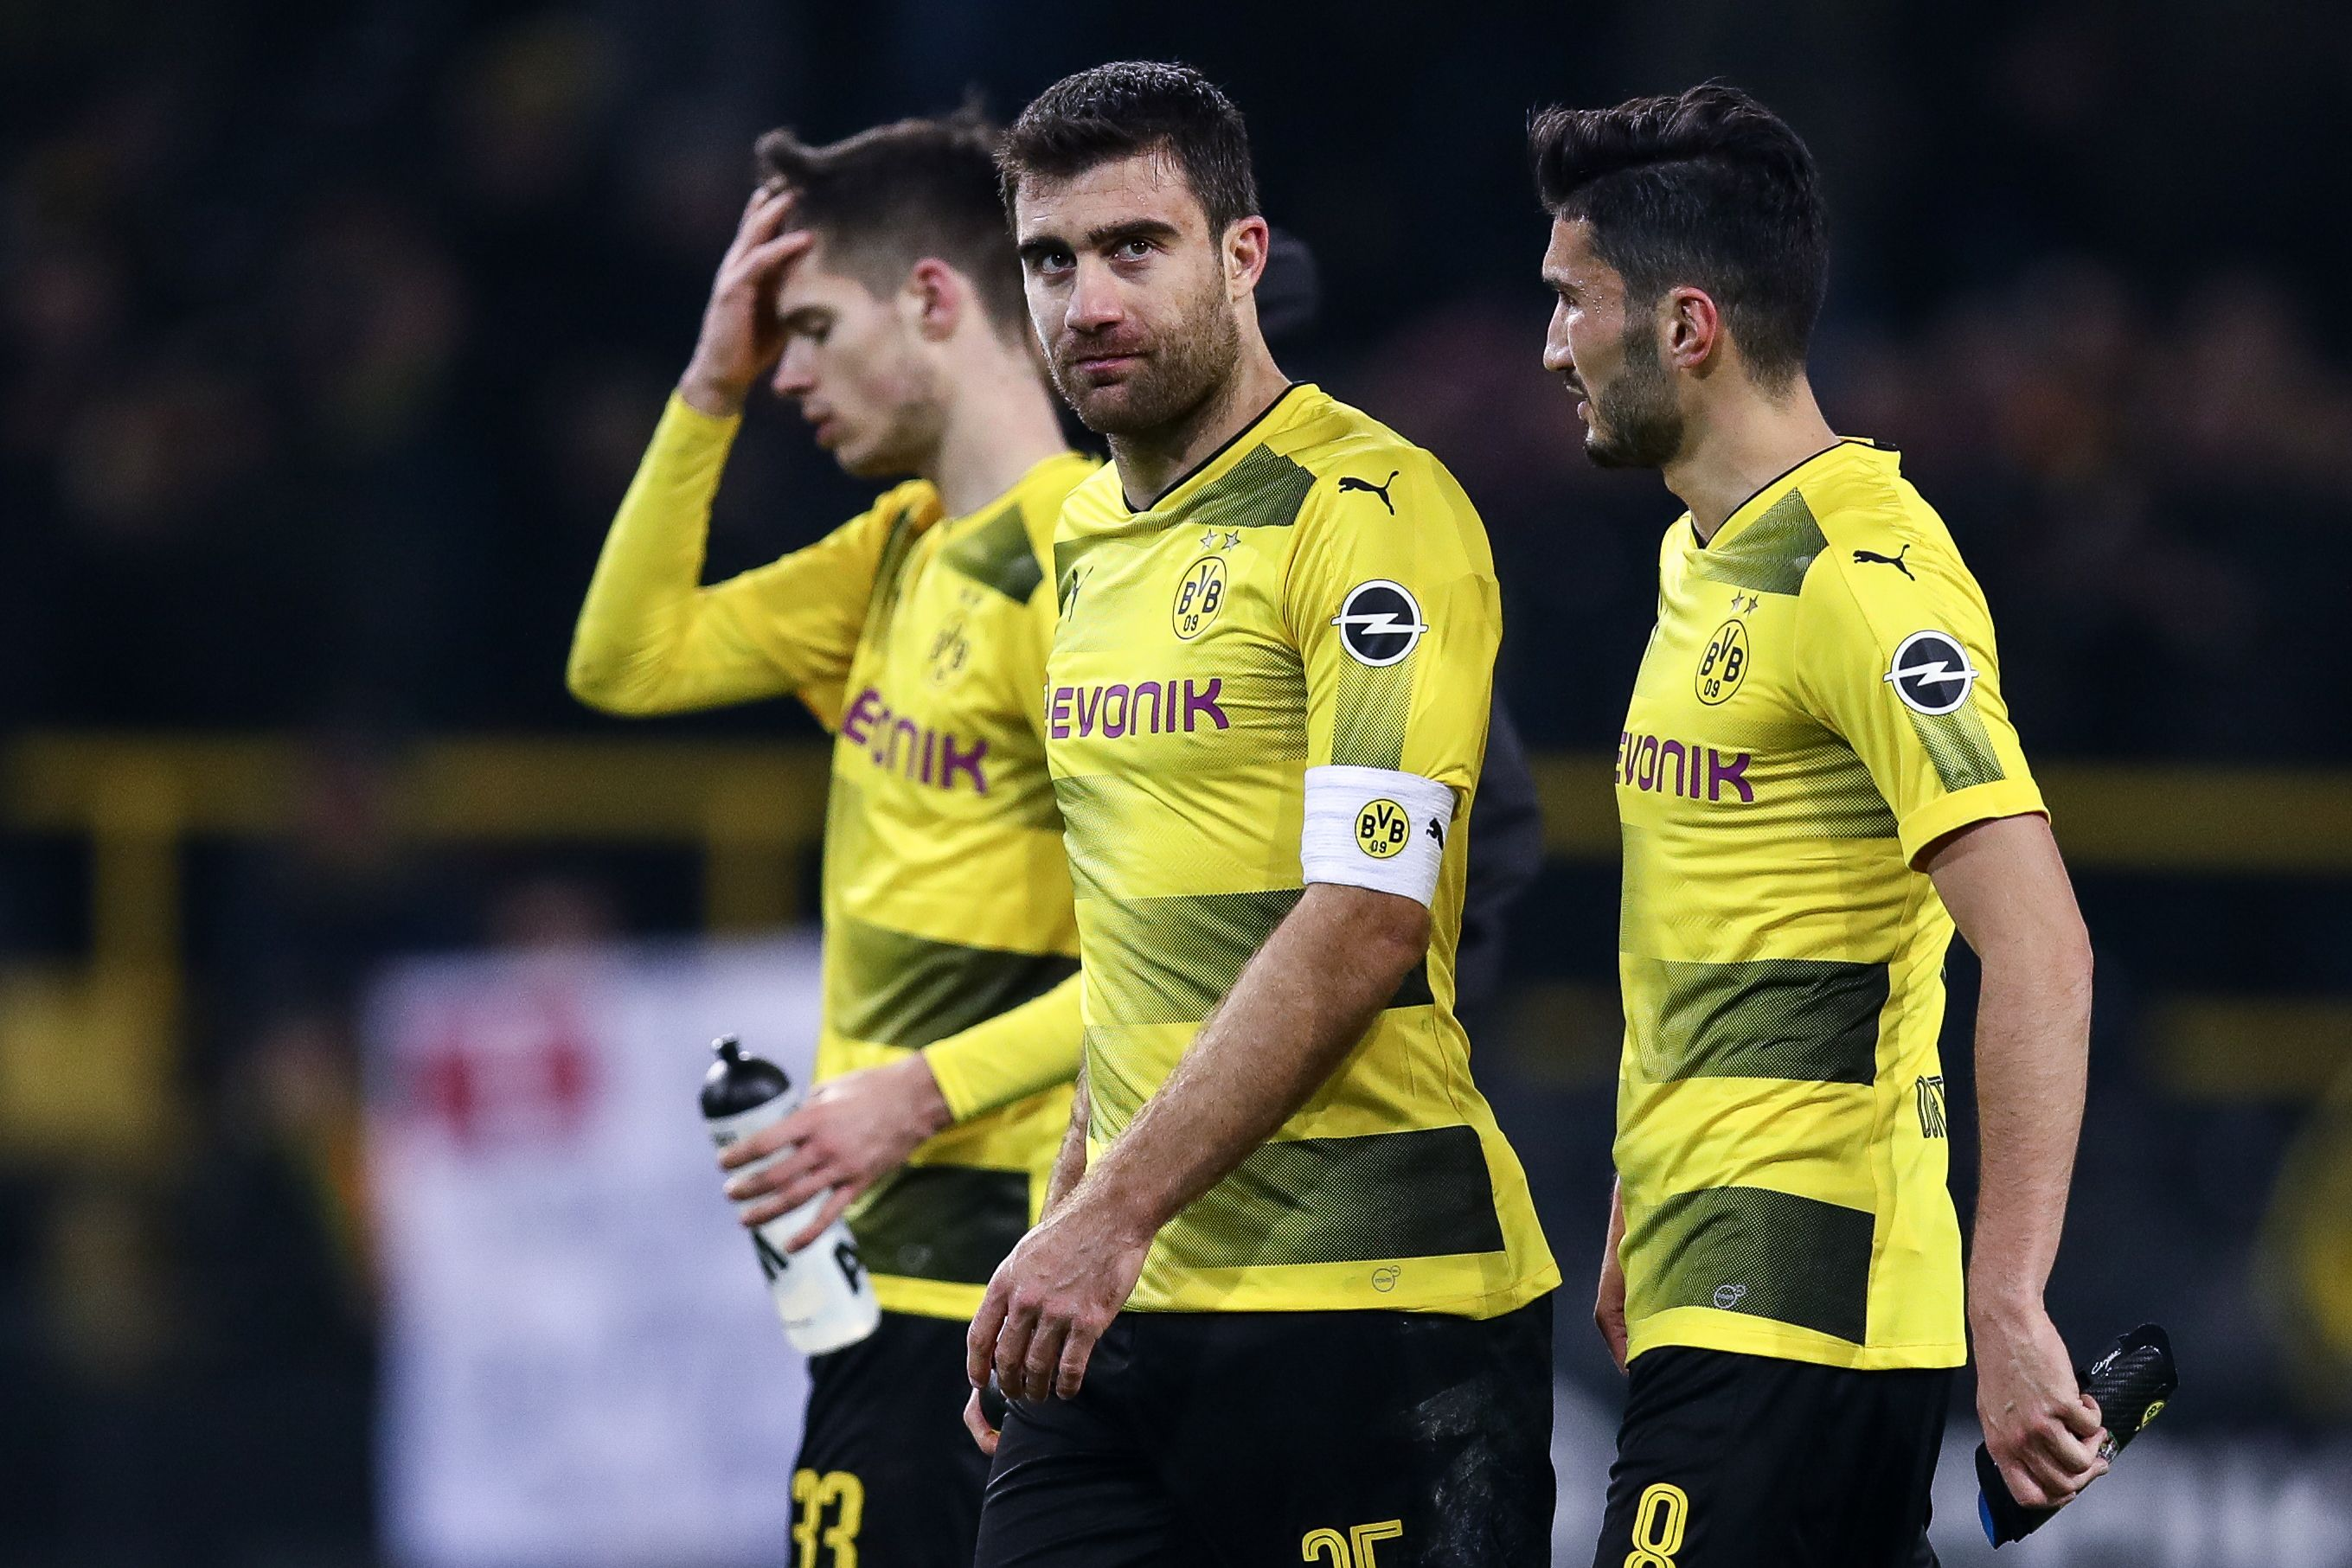 https://bvbbuzz.com/wp-content/uploads/getty-images/2018/01/904959586-borussia-dortmund-v-vfl-wolfsburg-bundesliga.jpg.jpg